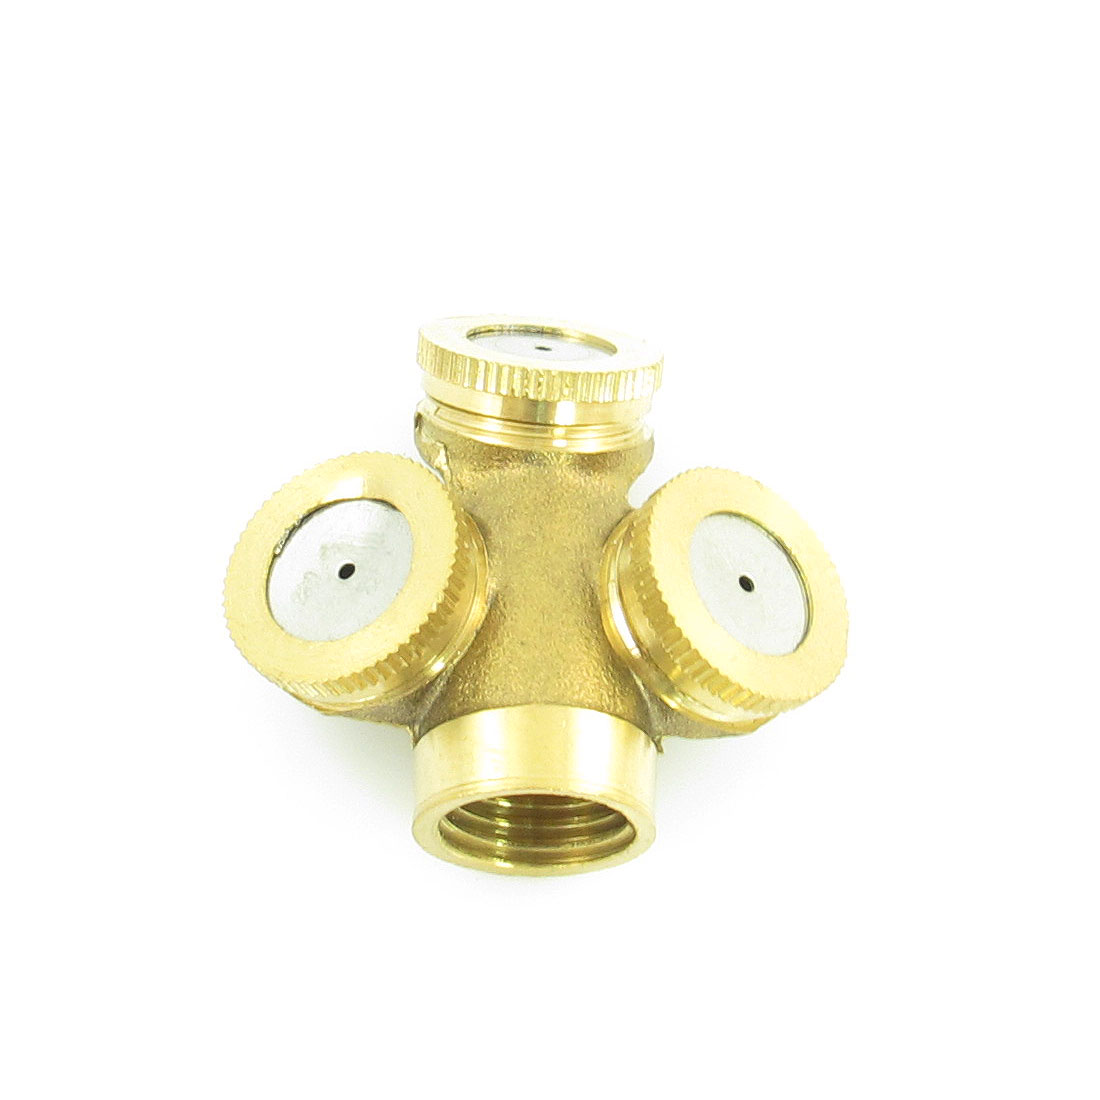 Lawn Yard Garden Three Head 16mm Female Thread Water Sprinkler